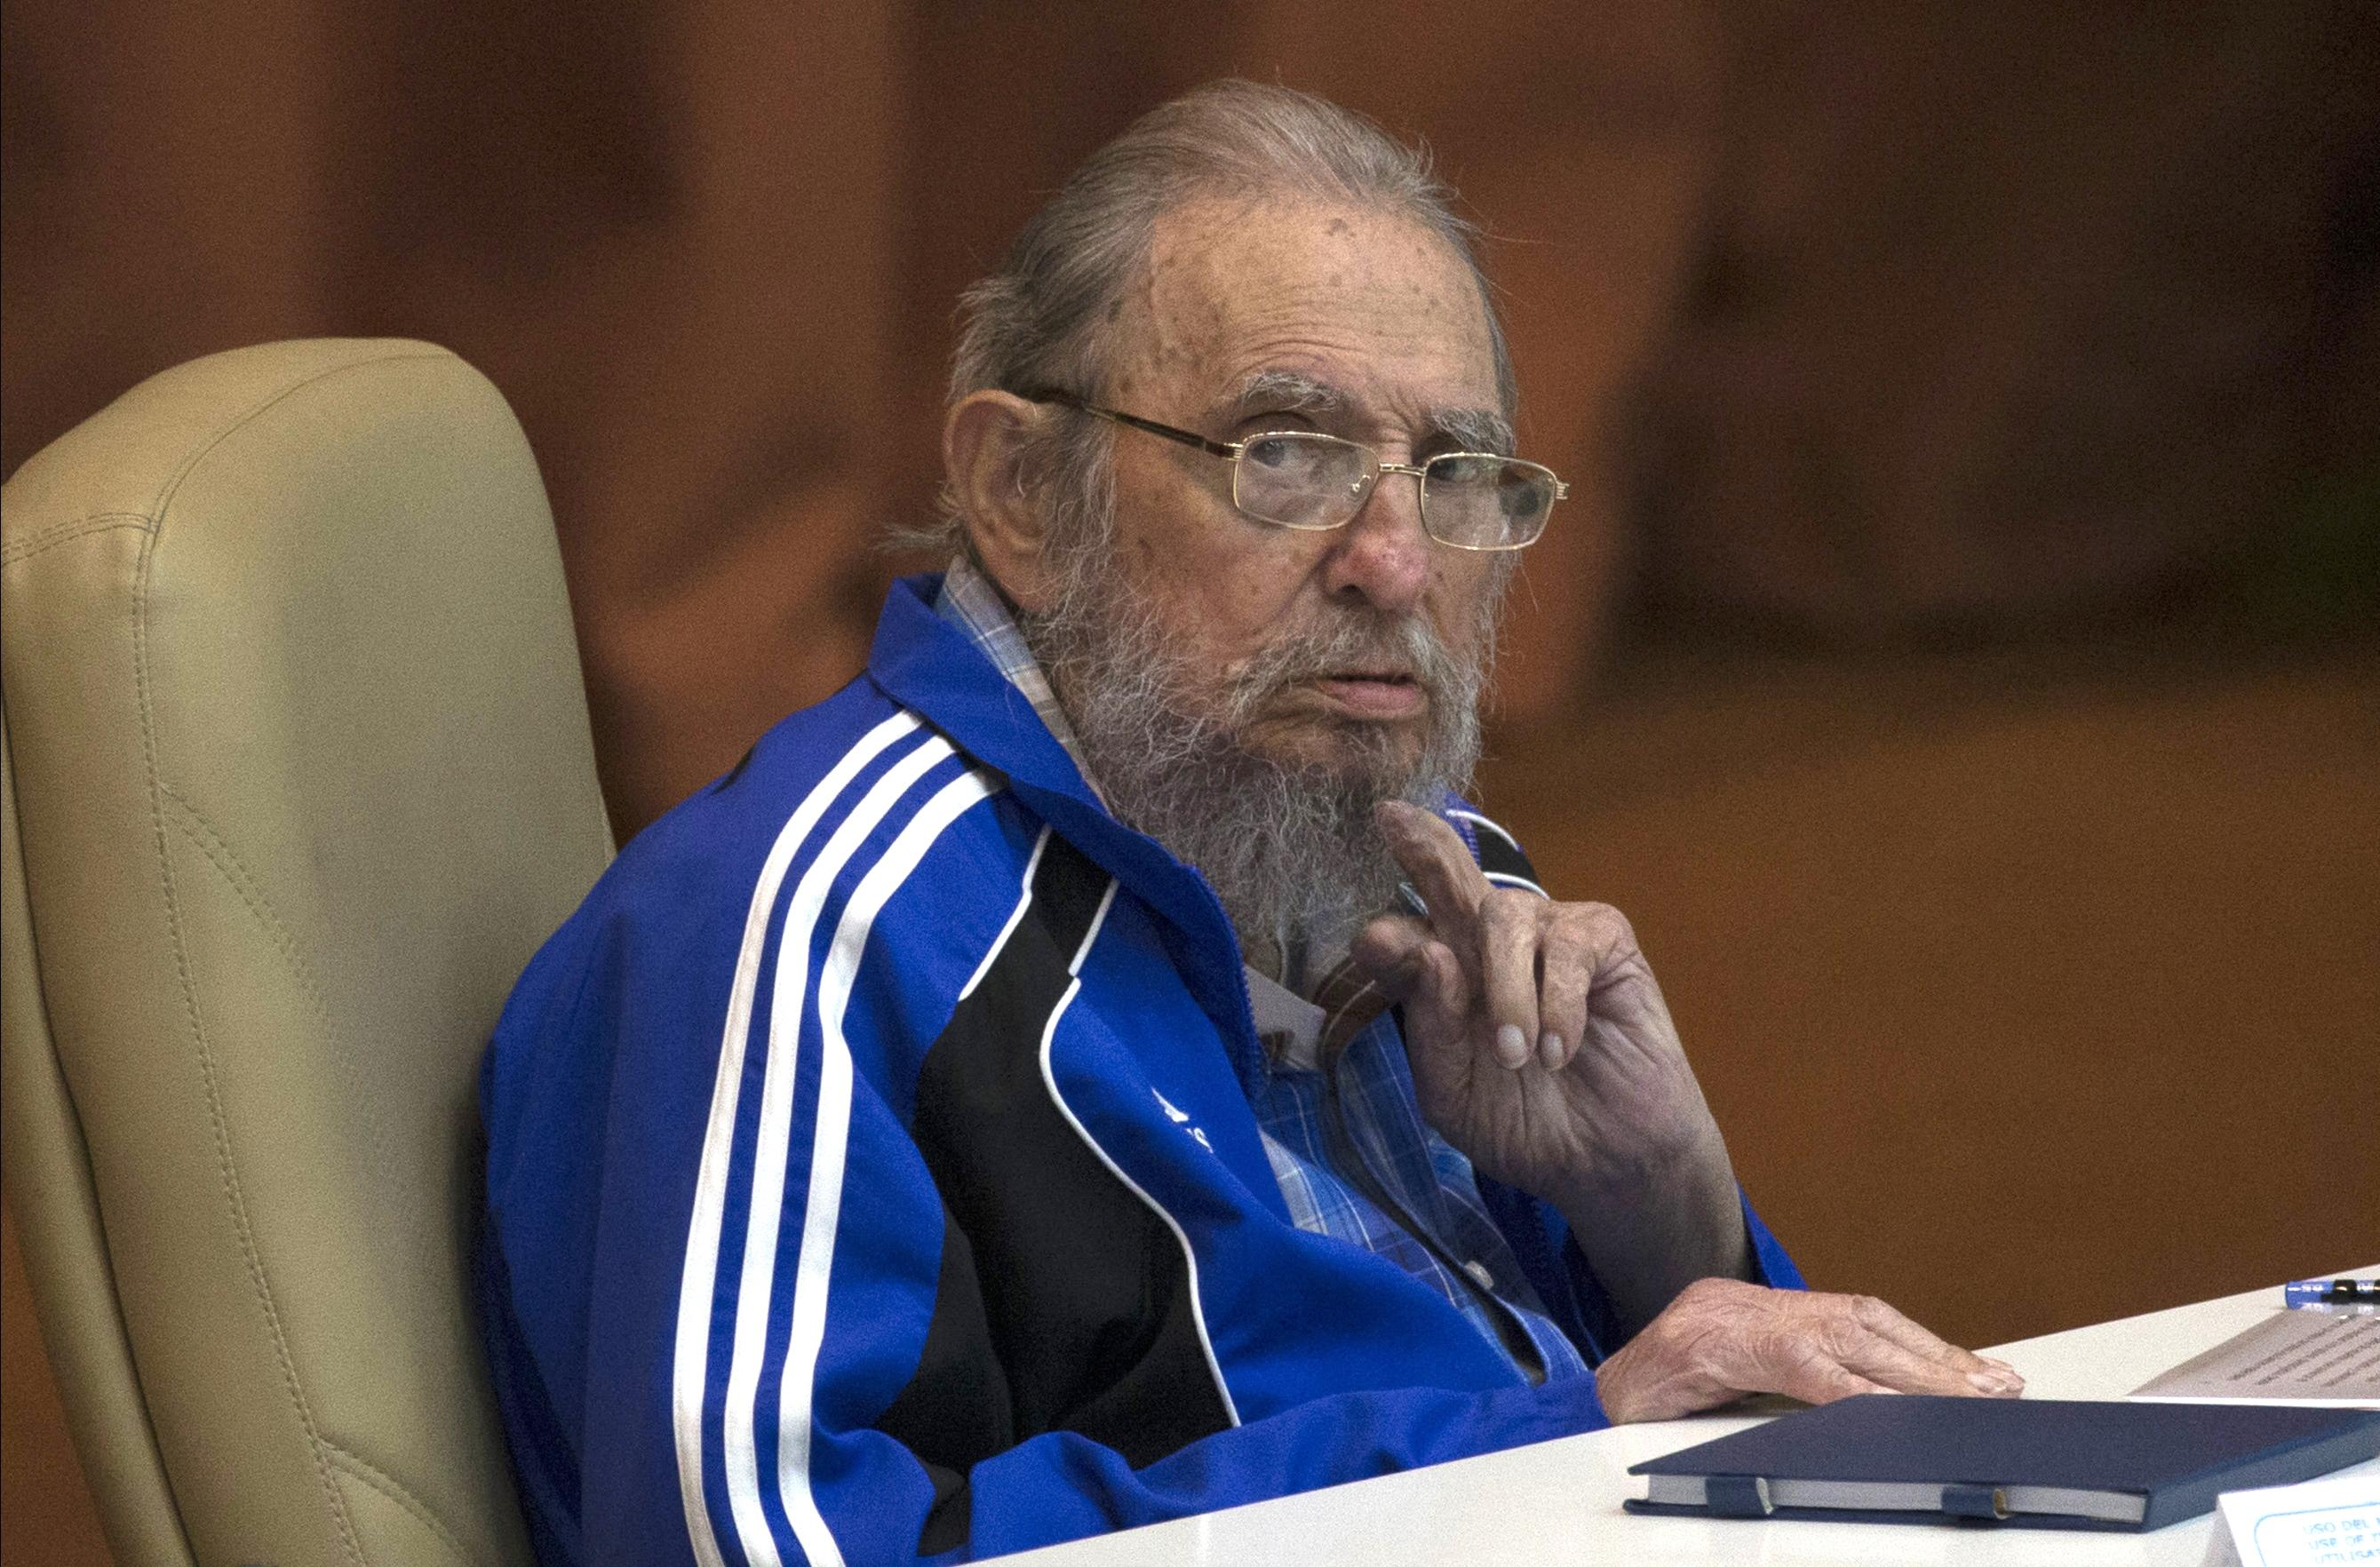 In this April 19, 2016 file photo, Fidel Castro attends the last day of the 7th Cuban Communist Party Congress in Havana, Cuba. Fidel Castro formally stepped down in 2008 after suffering gastrointestinal ailments and public appearances have been increasingly unusual in recent years. Cuban President Raul Castro has announced the death of his brother Fidel Castro at age 90 on Cuban state media on Friday, Nov. 25, 2016.| Ismael Francisco/Cuba debate via AP, St. George News